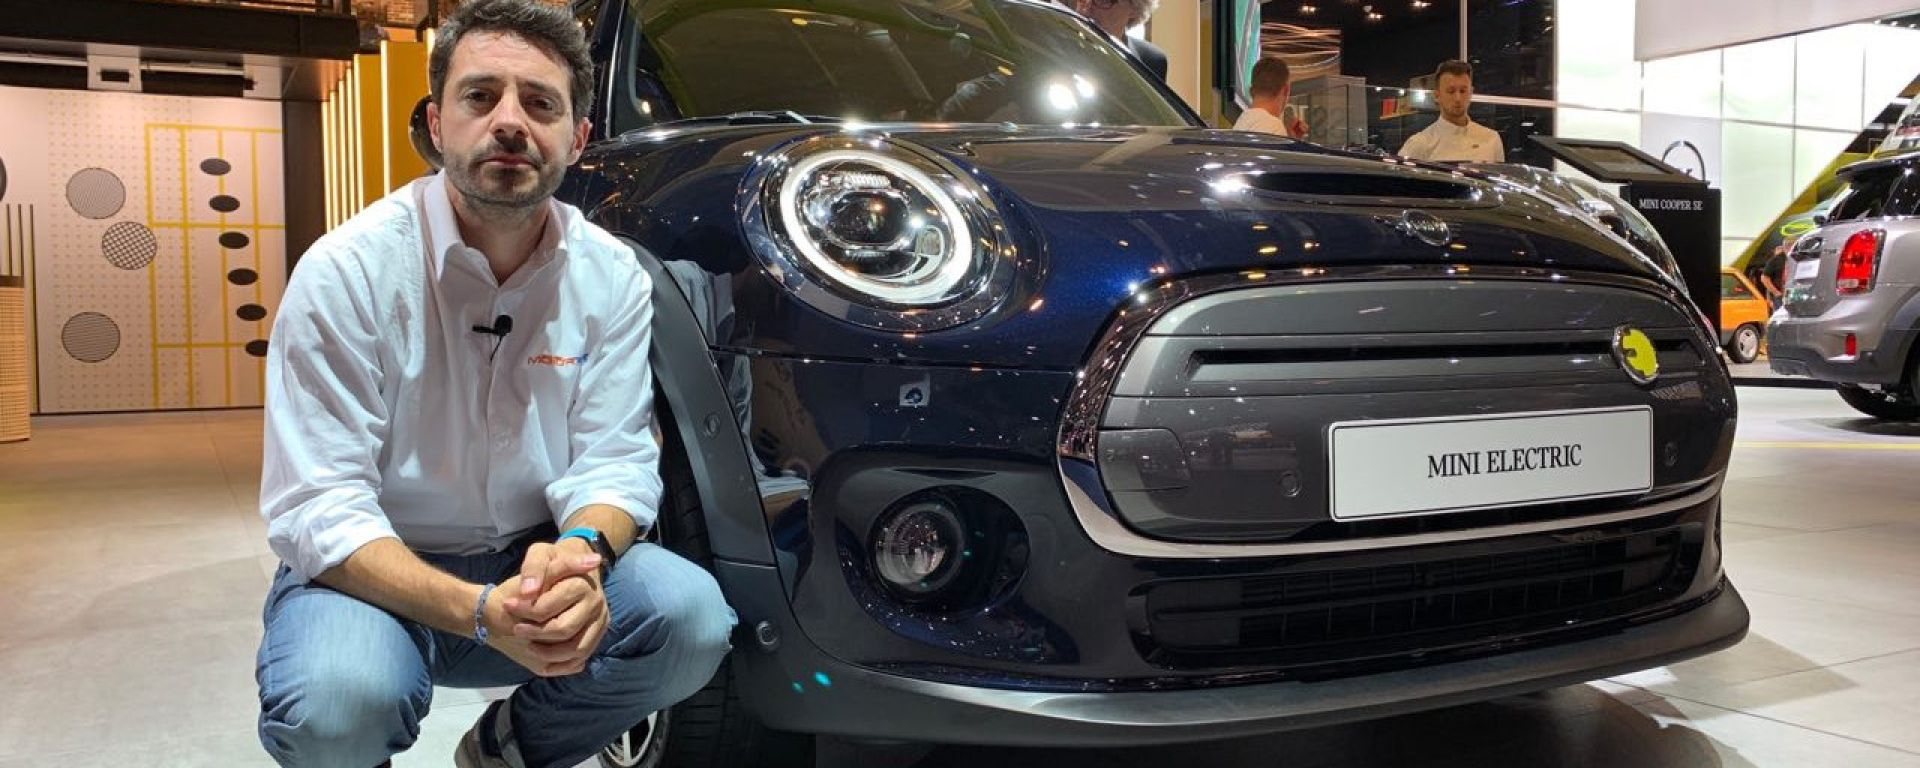 Mini SE, l'elettrica in video dal Salone di Francoforte 2019